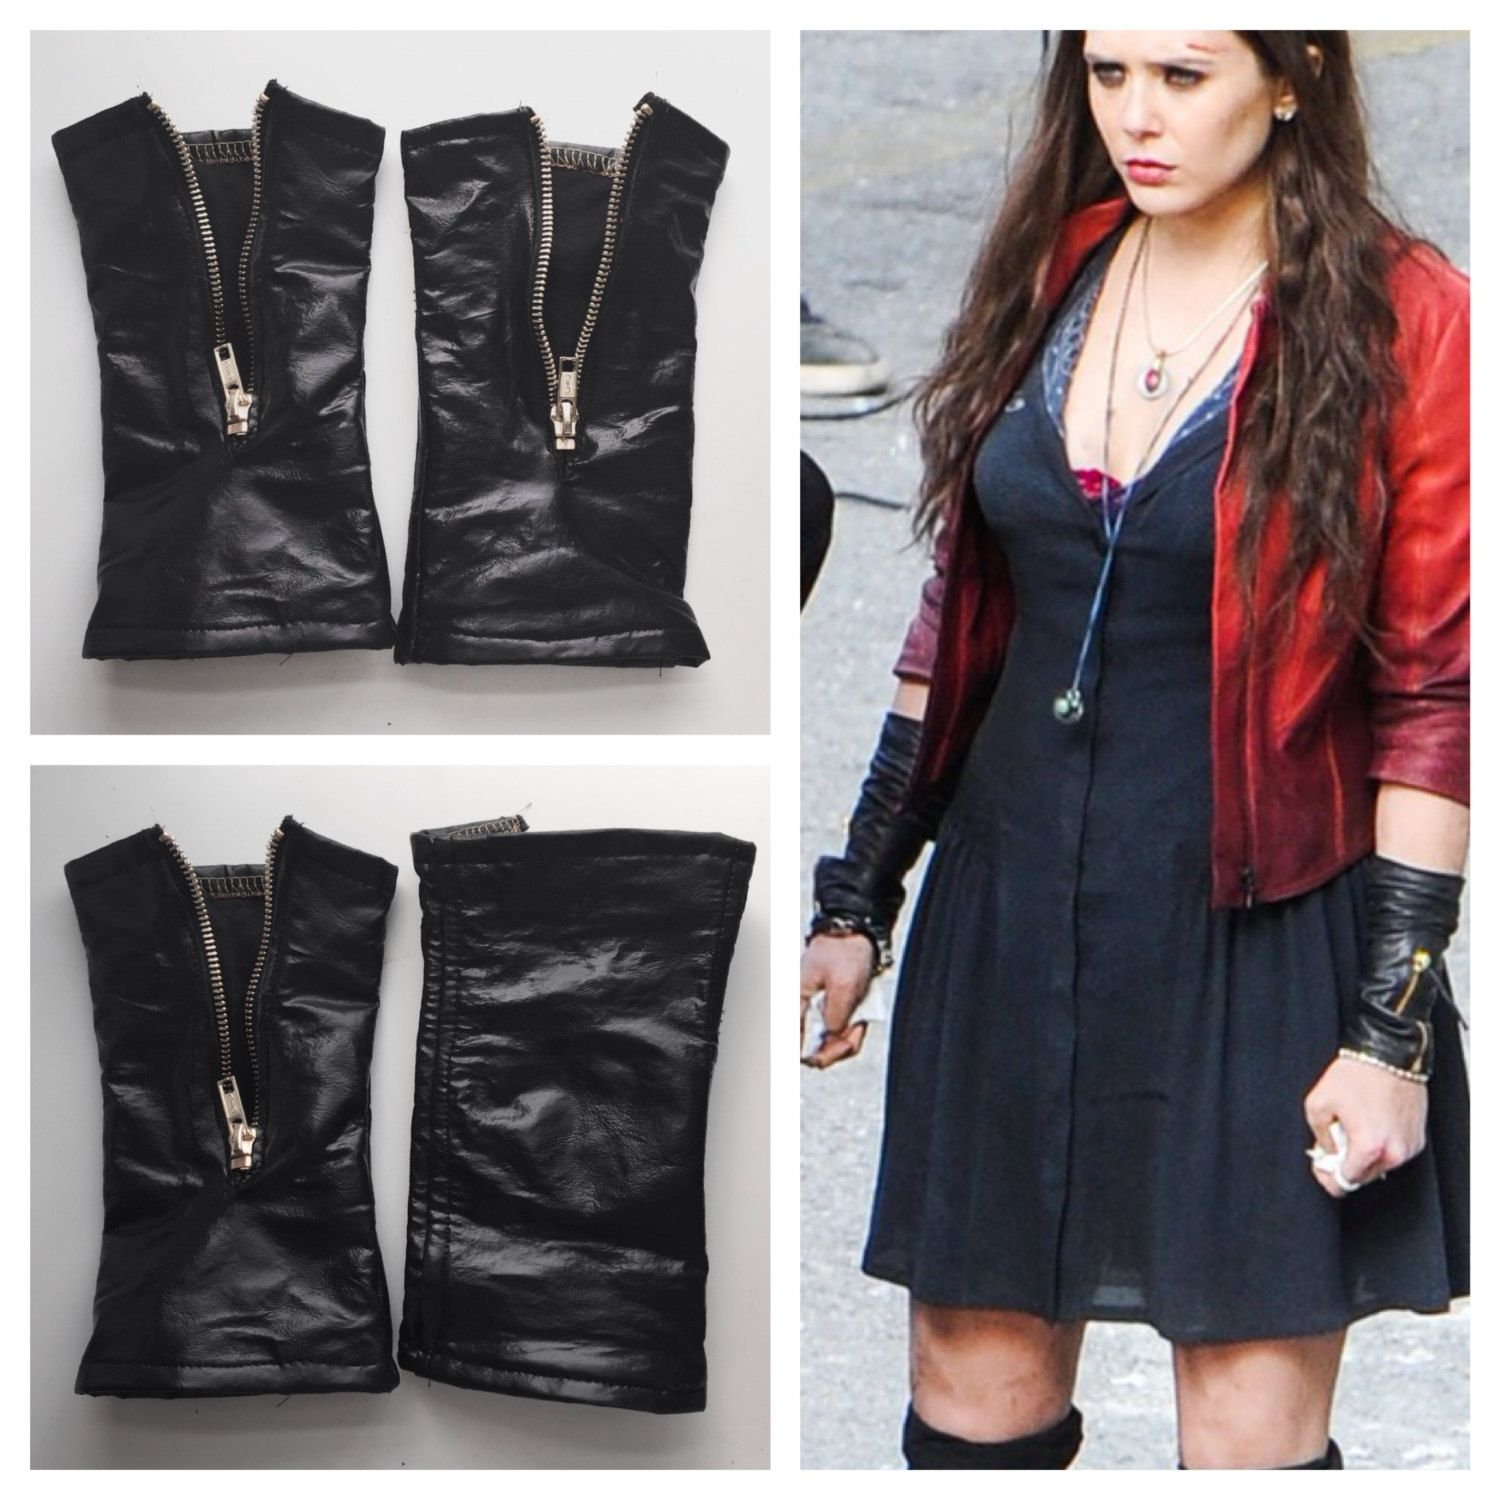 Scarlet Witch Armwarmers Avengers 2 Cosplay Pinterest Scarlet